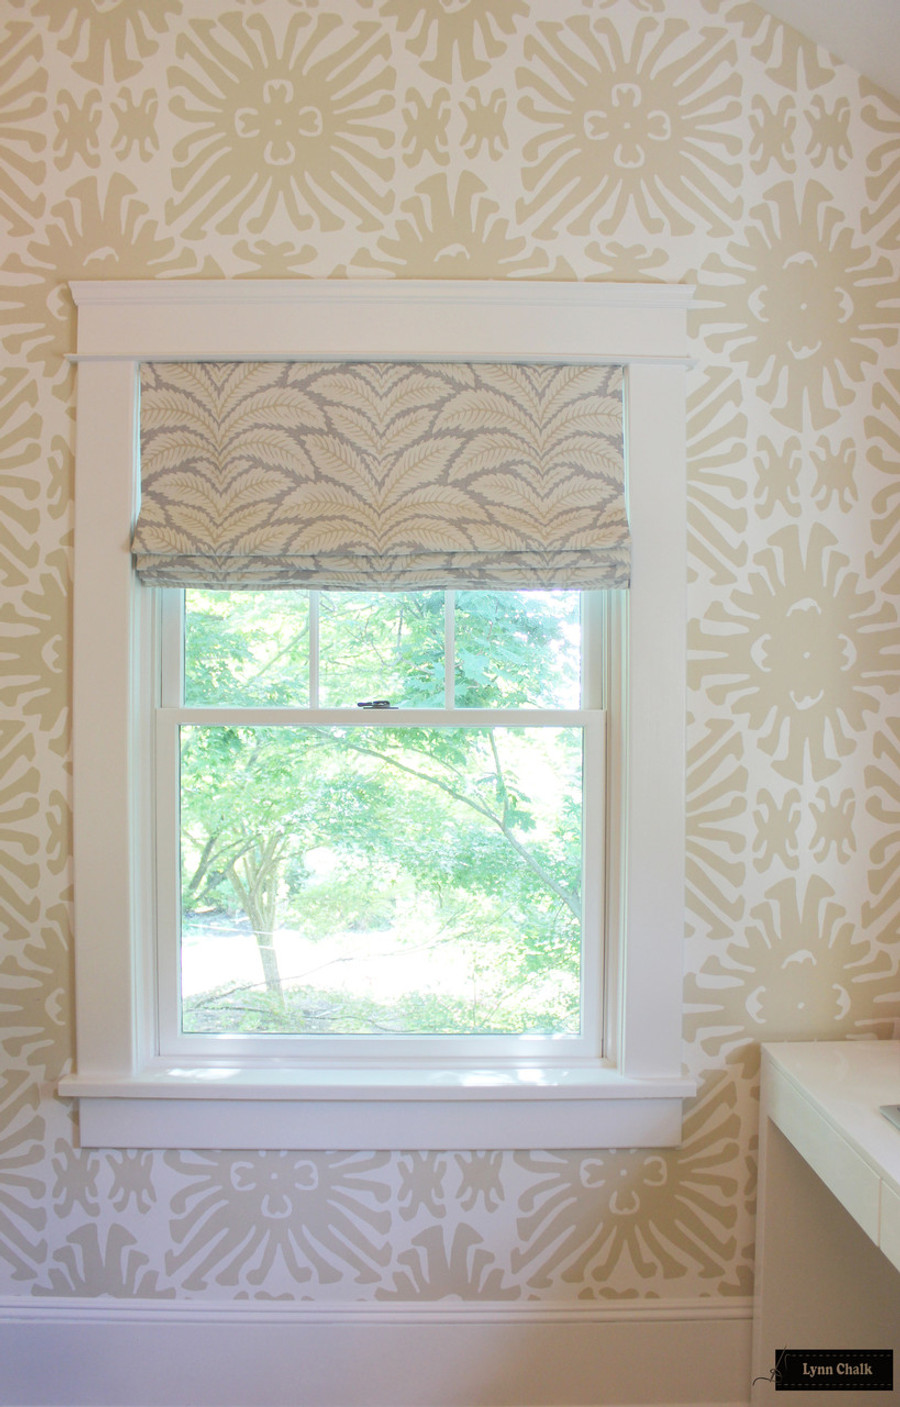 Brunschwig Fils Talavera Linen In Birch Roman Shades With Quadrille Sigourney Wallpaper